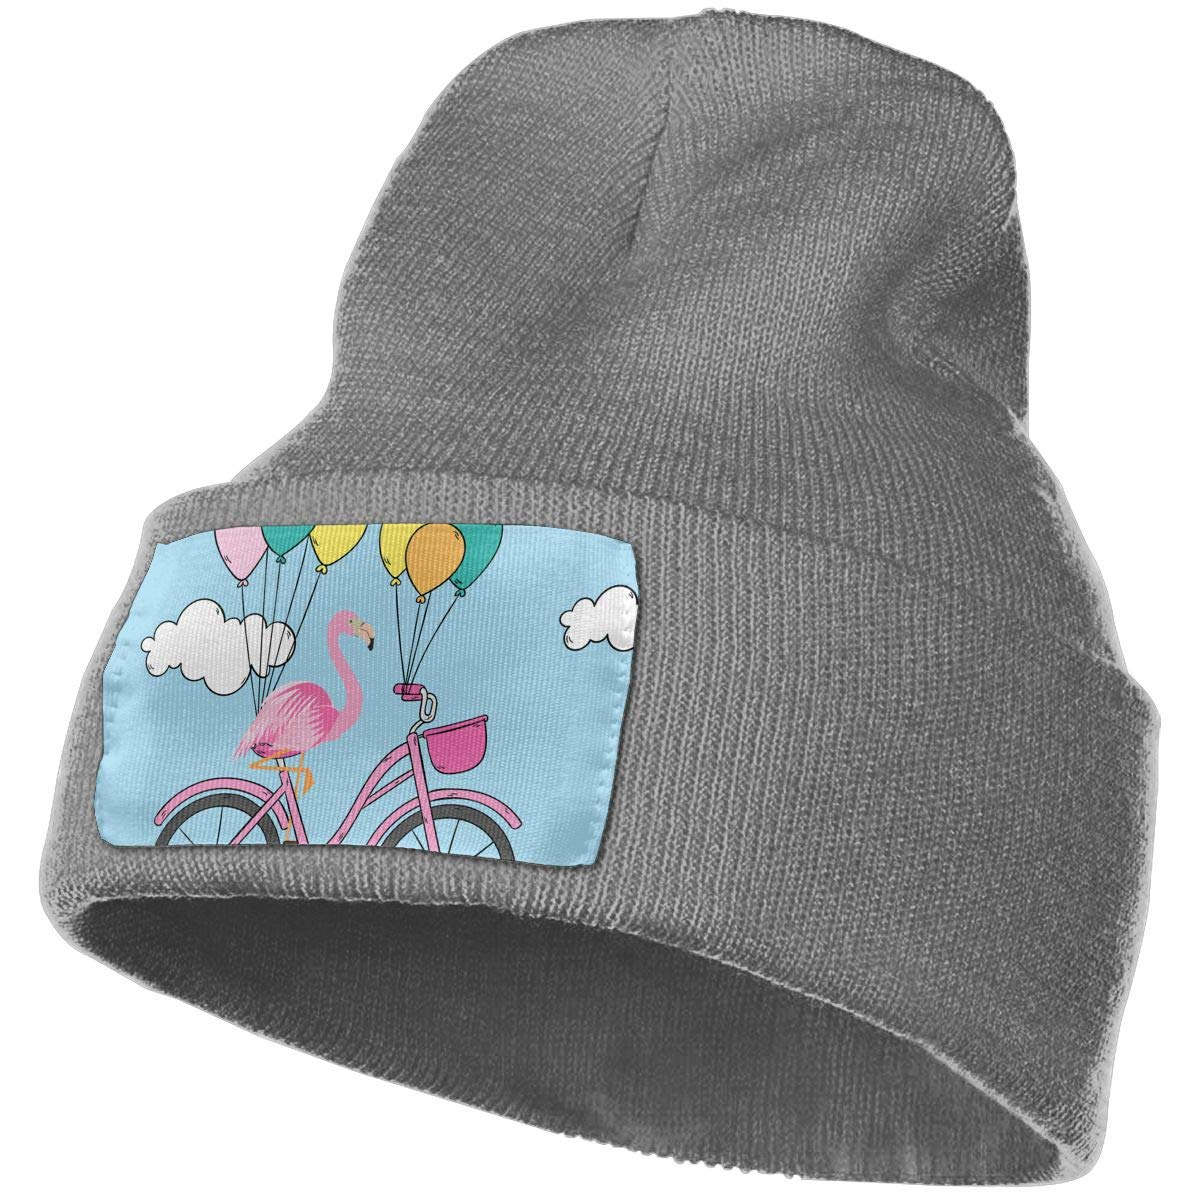 Flamingo On A Bicycle Hat for Men and Women Winter Warm Hats Knit Slouchy Thick Skull Cap Black